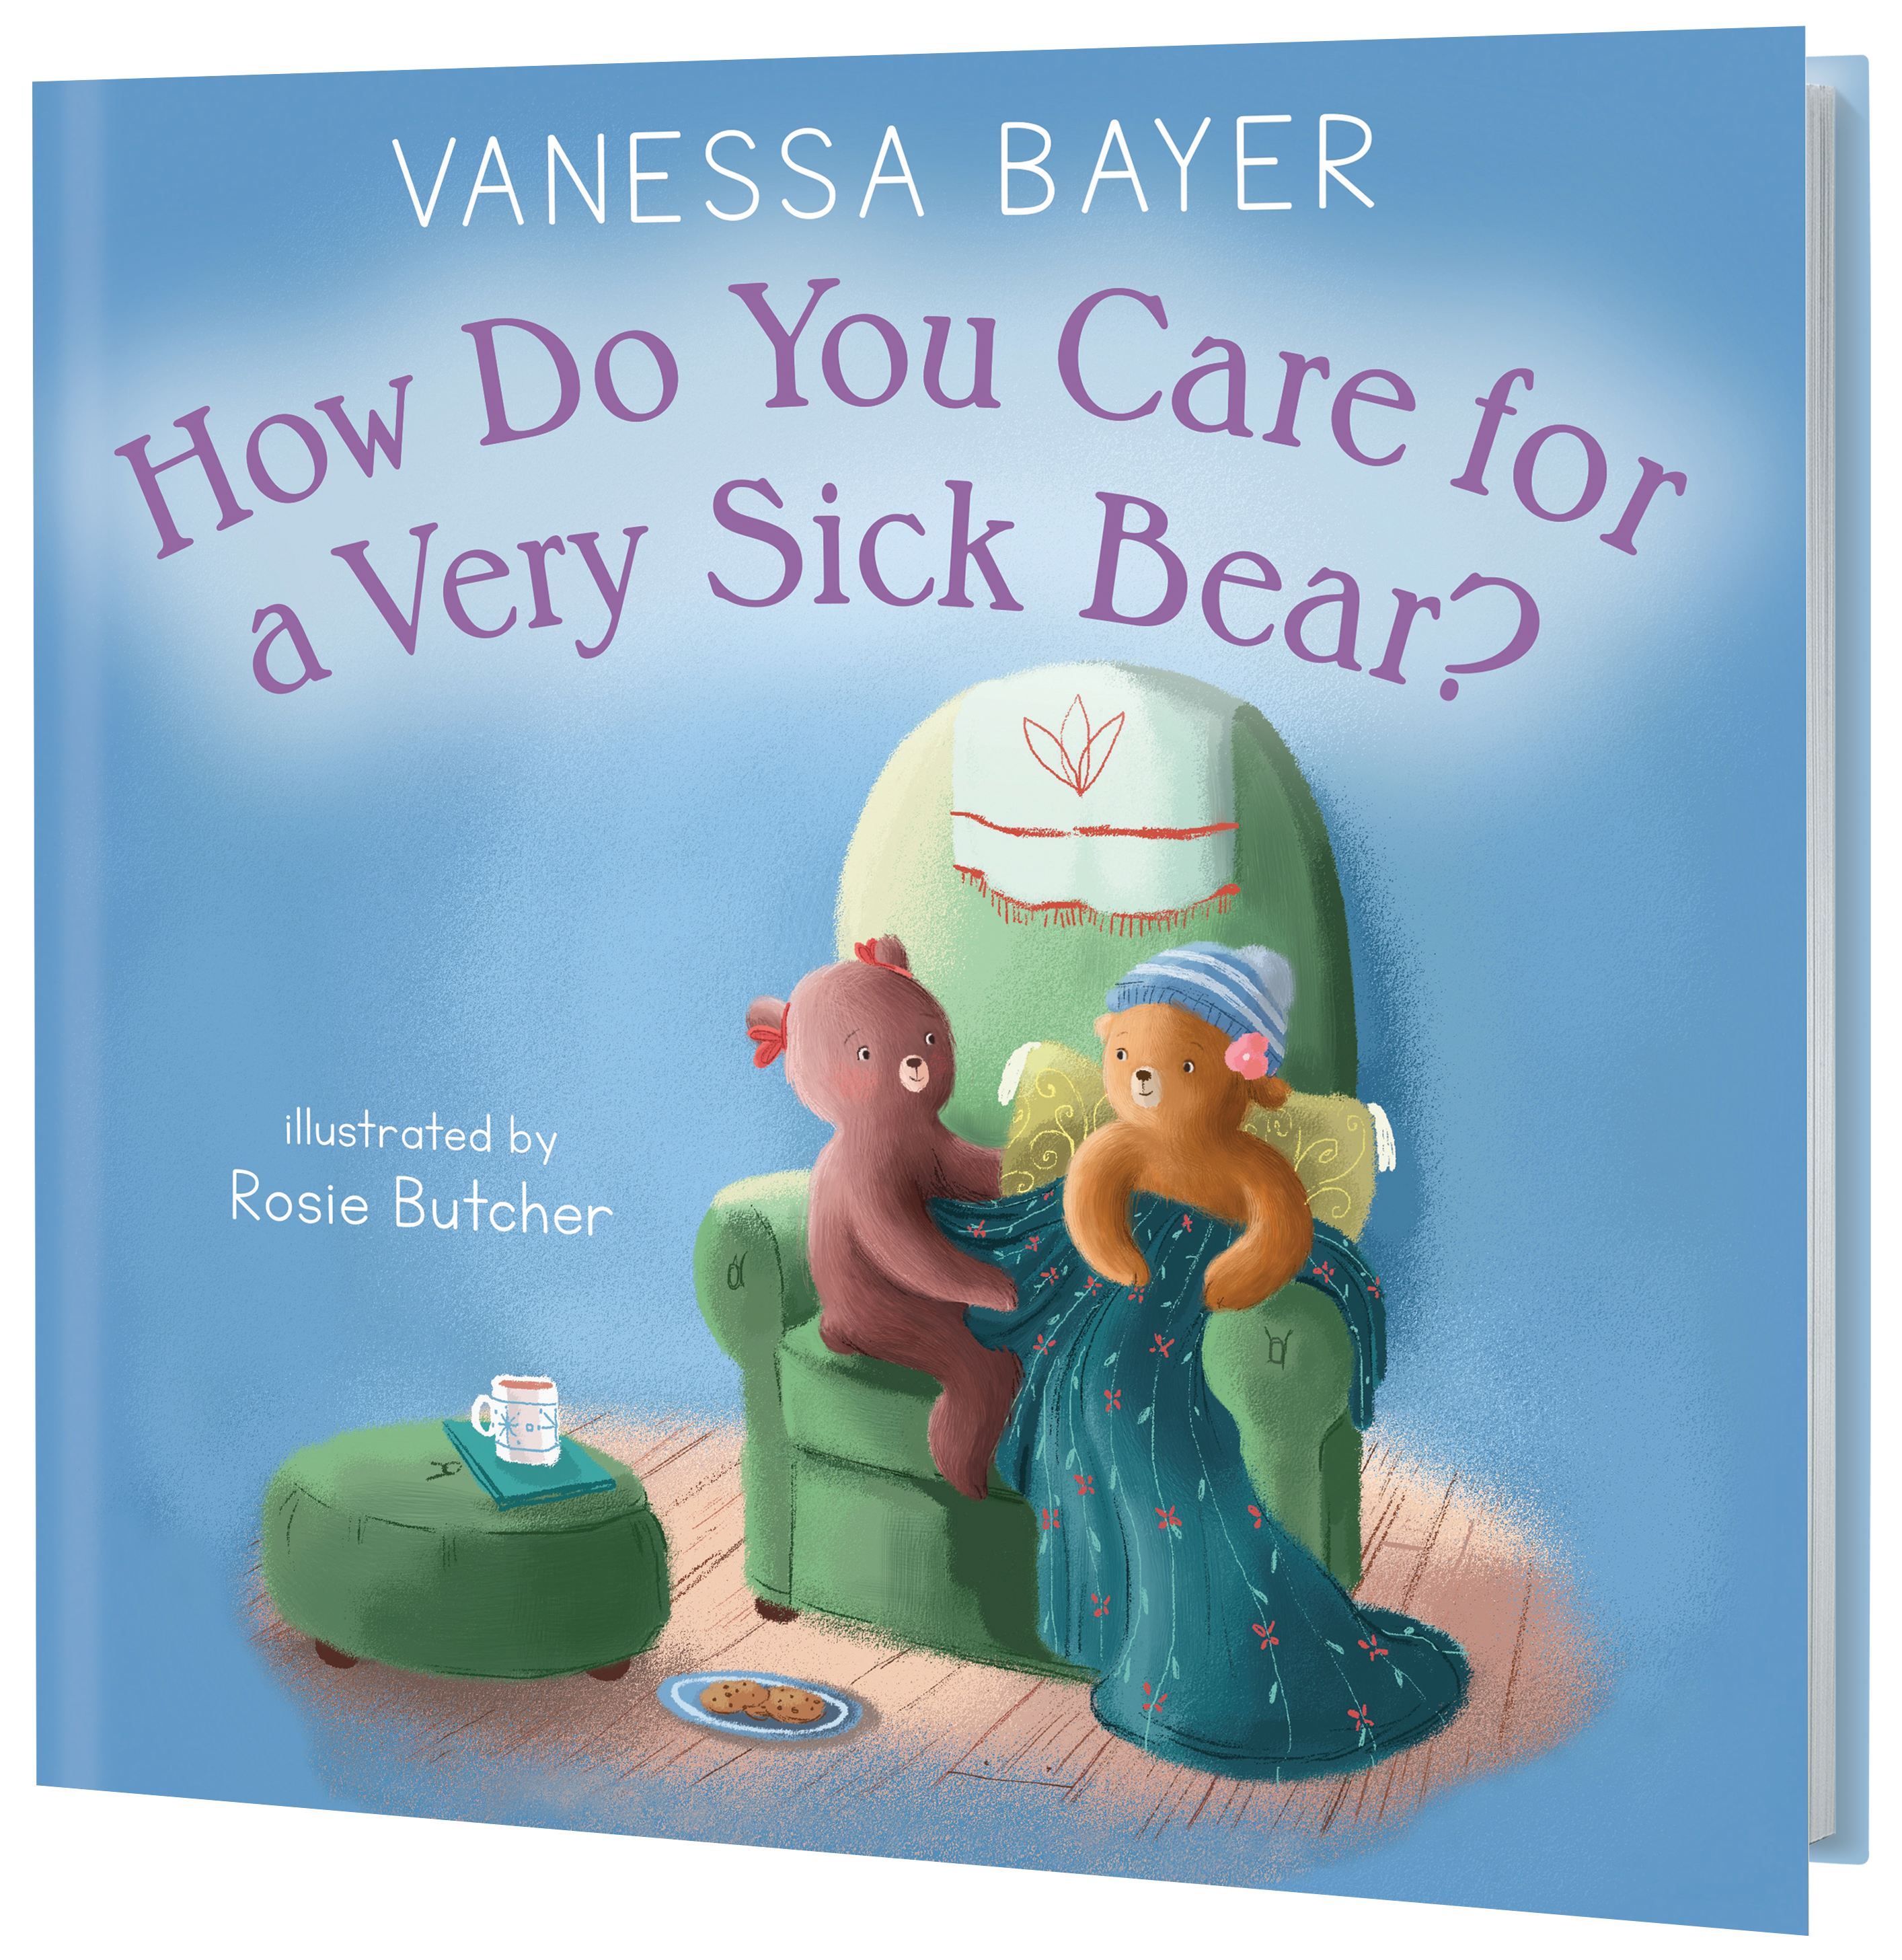 3d rendering of How Do You Care For a Very Sick Bear?